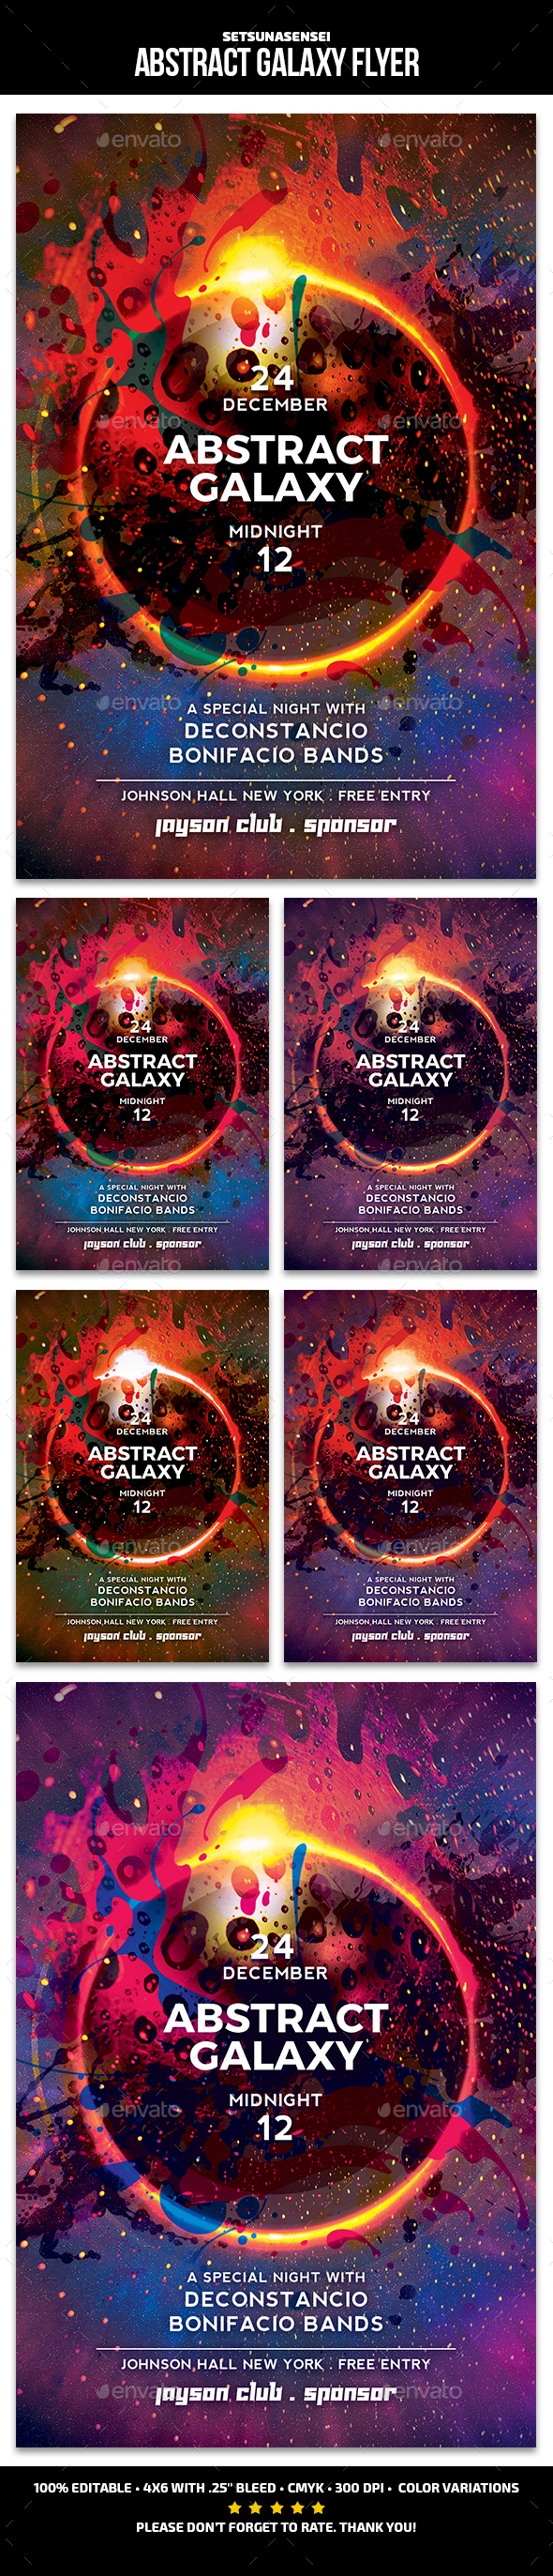 Abstract Galaxy Flyer - Events Flyers